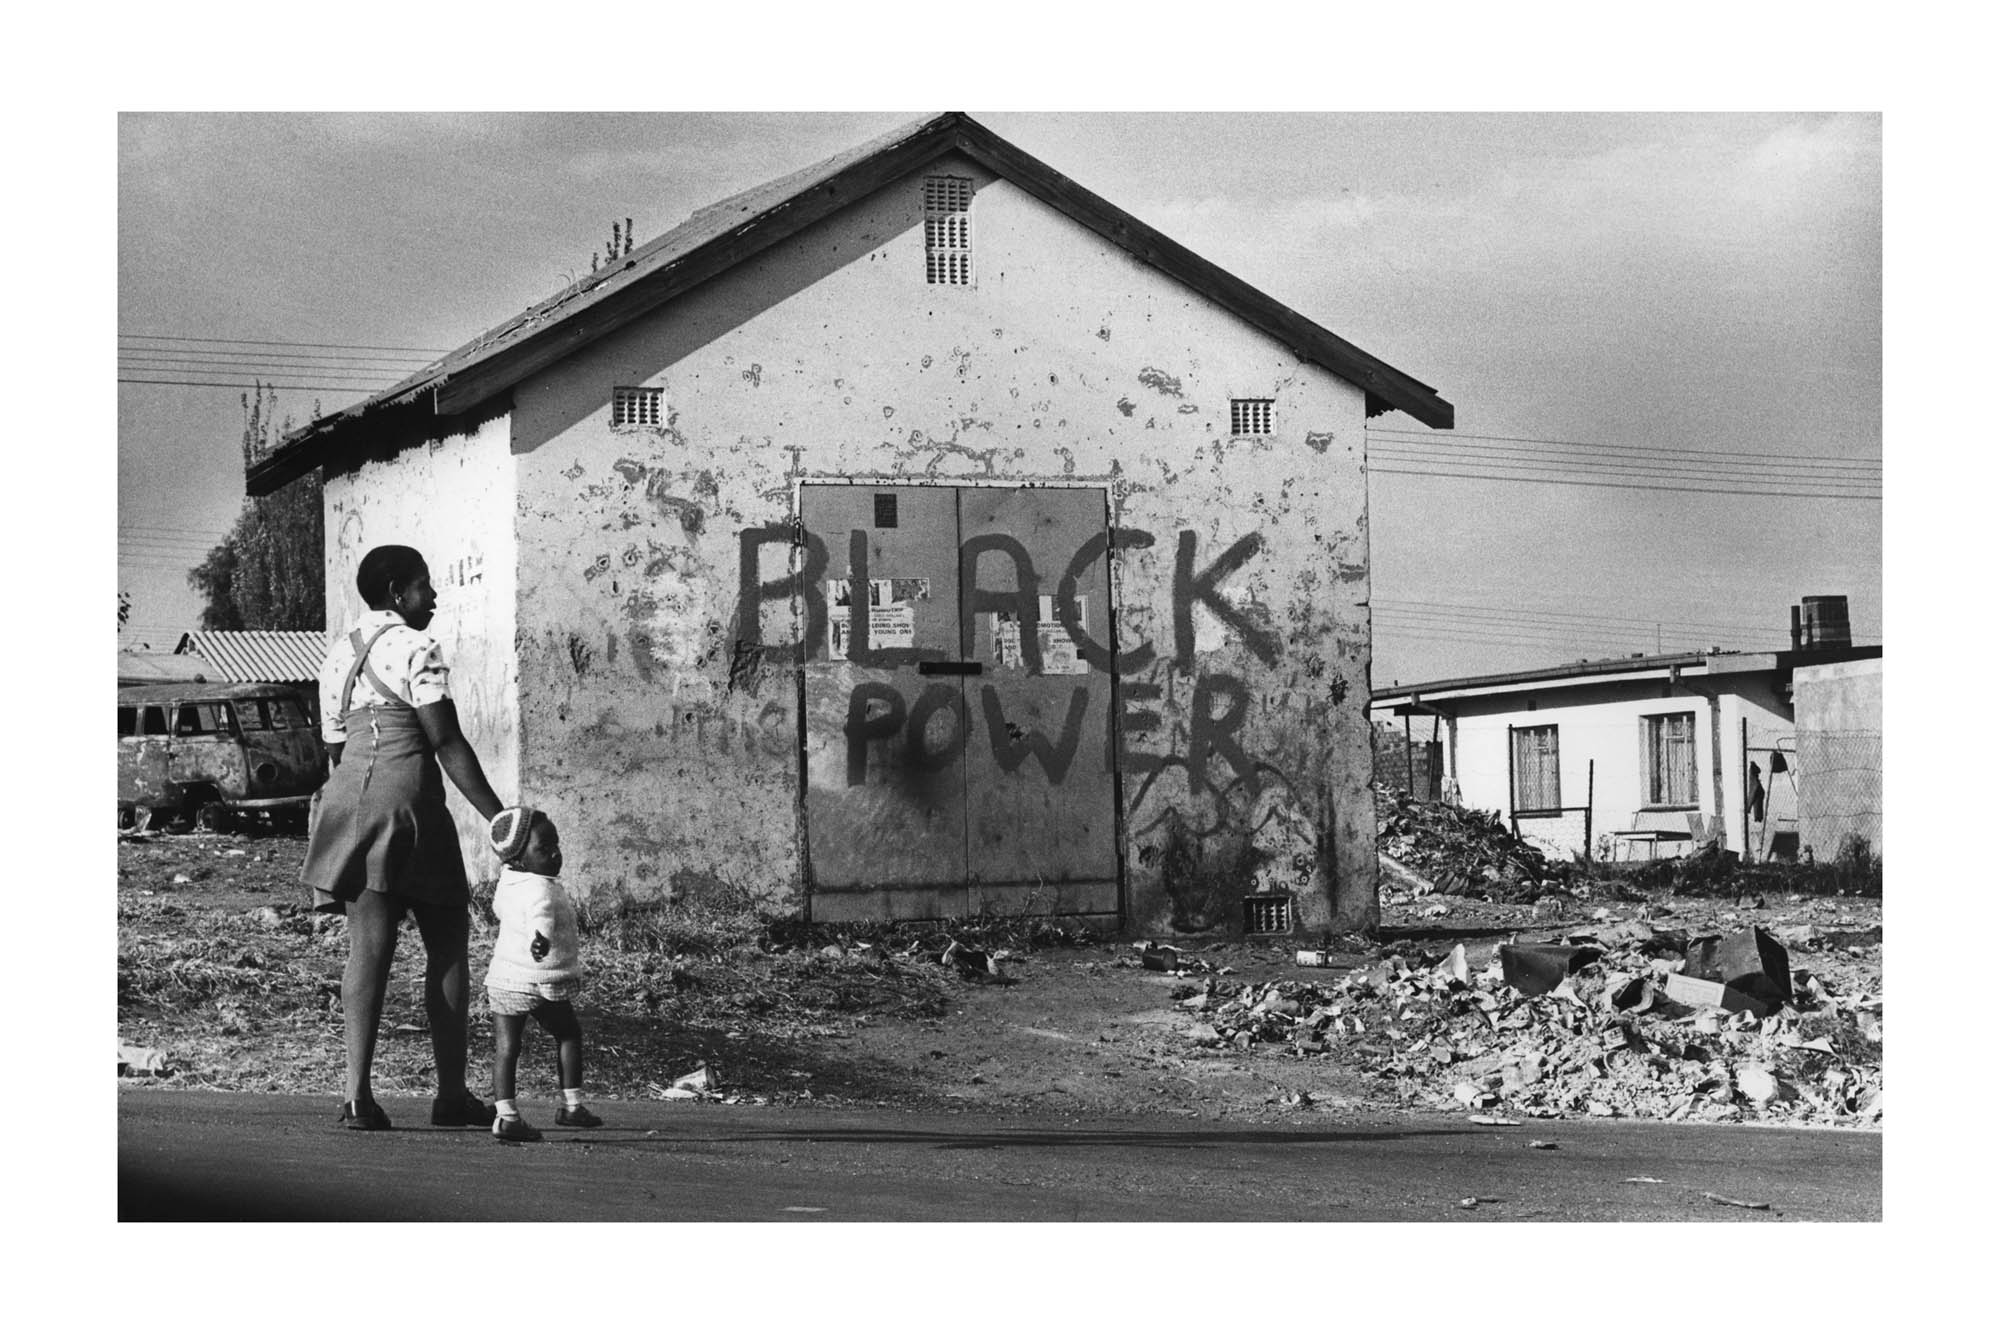 1976: Black Power. (Photograph by Peter Magubane)